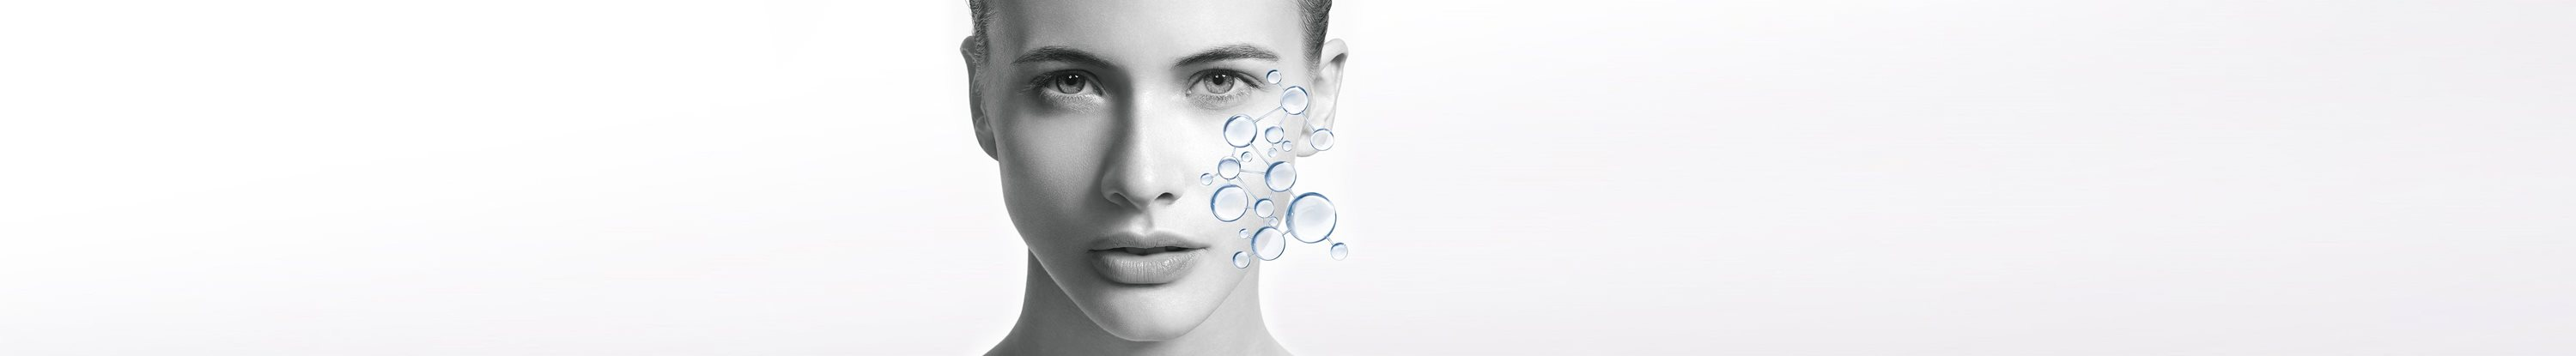 Woman's face with illustration of skin's own hydration system